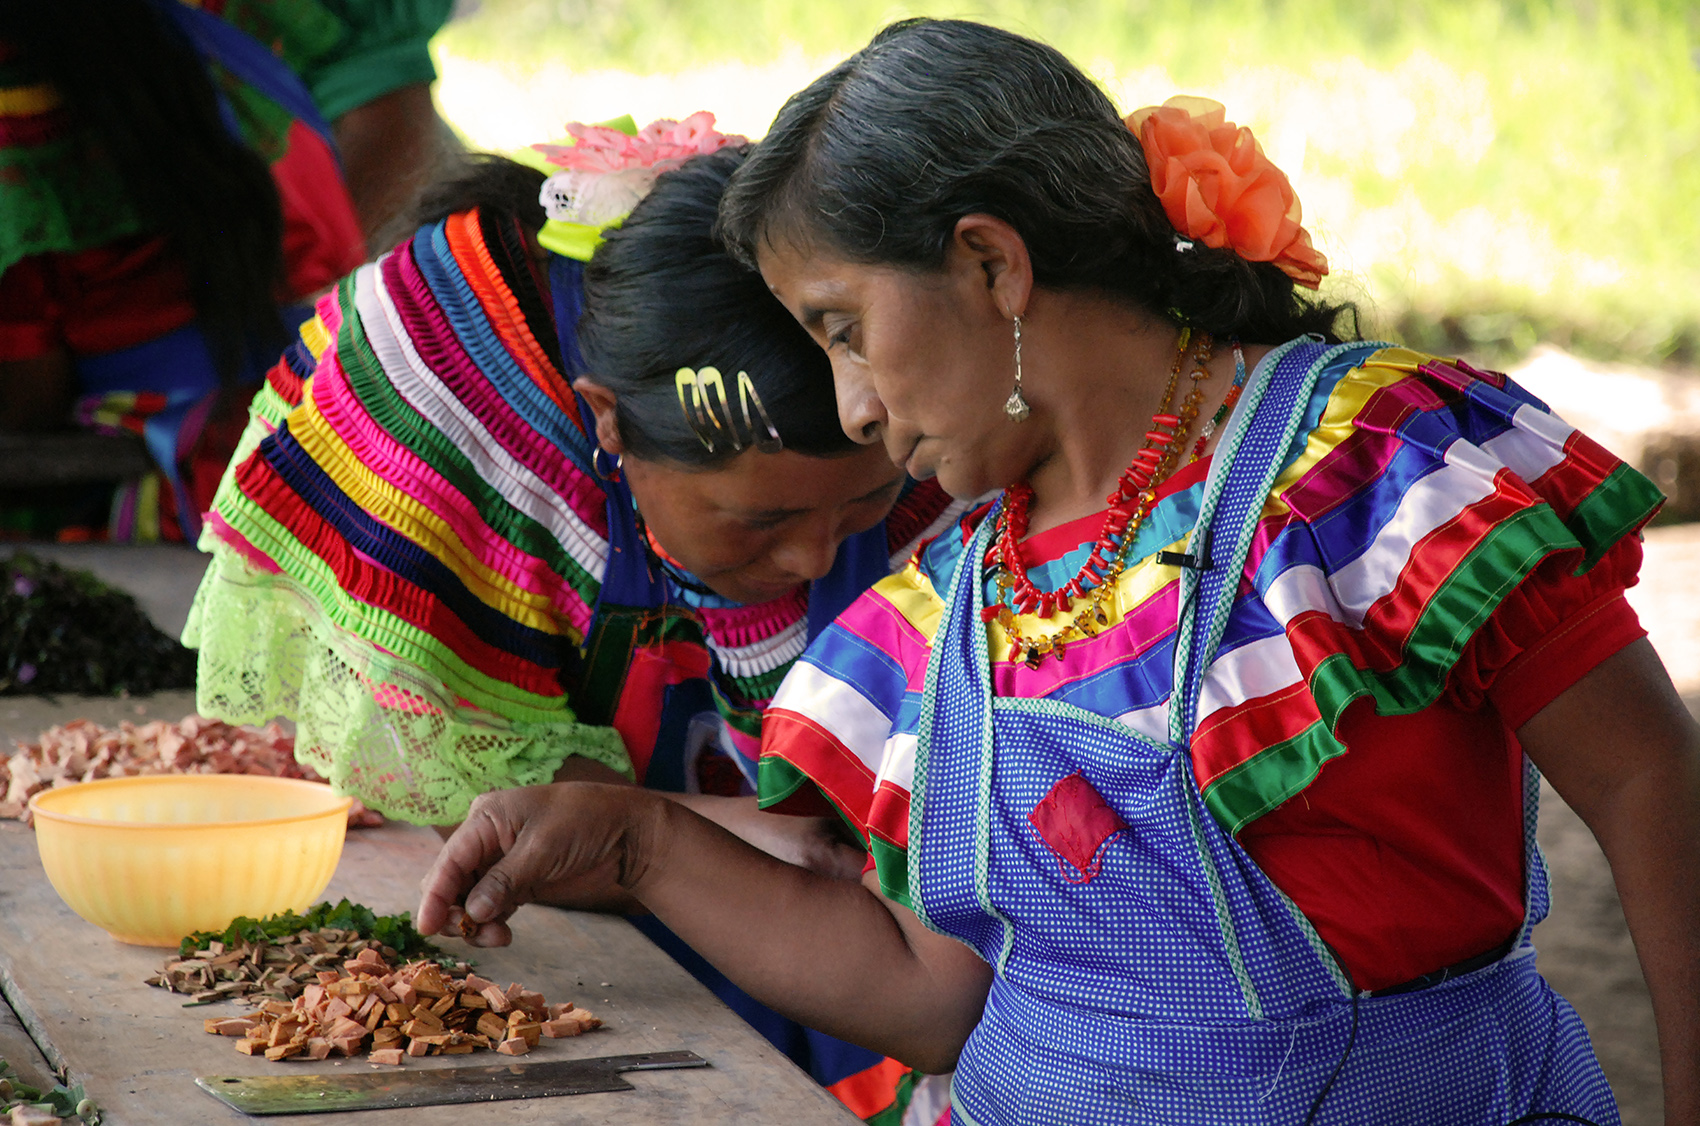 colorful photo of two women traditional healers in Chiapas Mexico